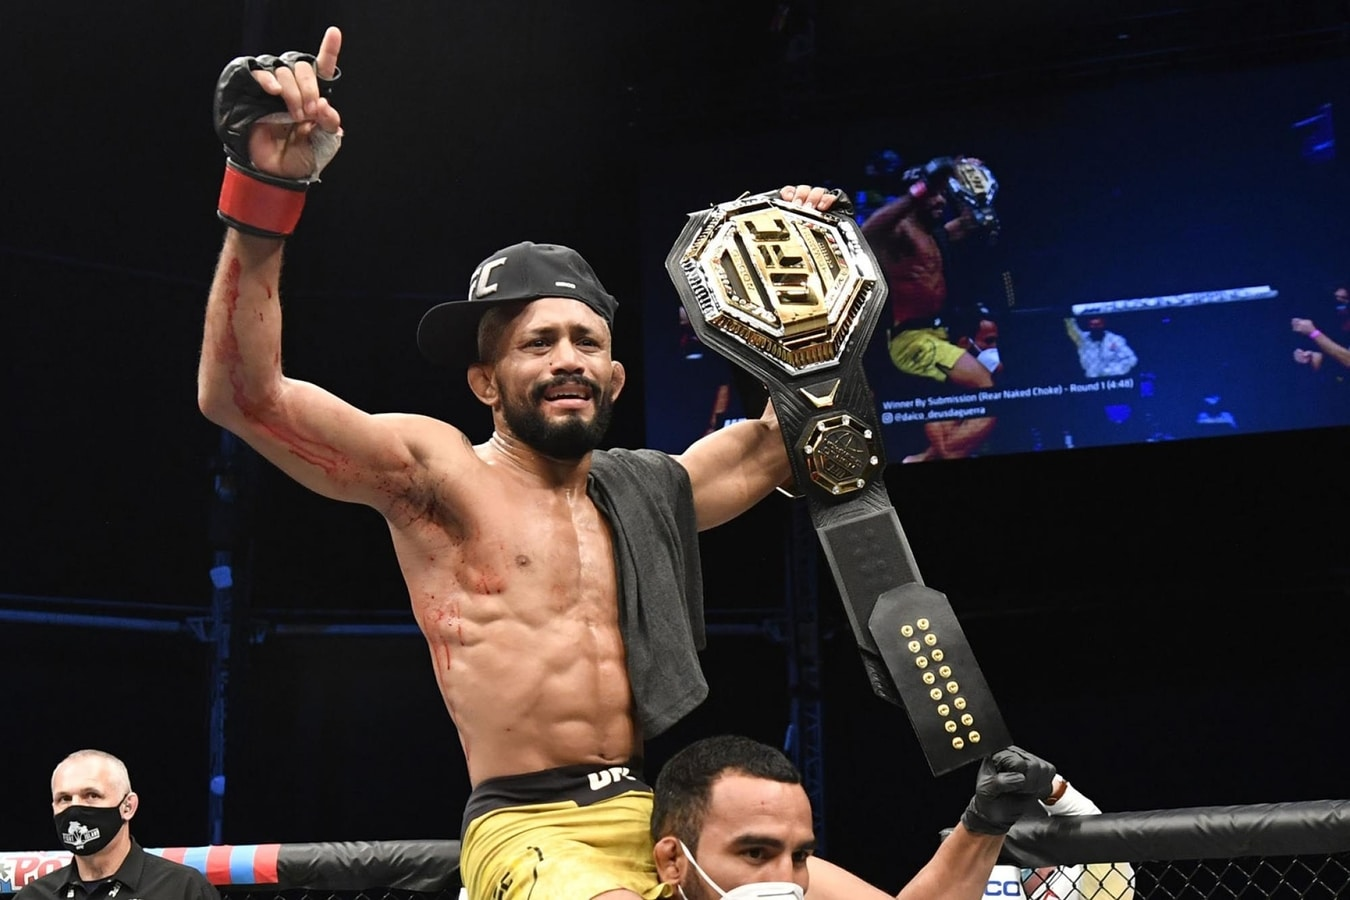 Looking to check out UFC 256 today? Here's everything you need to know, from the full fight card to all the places to watch.